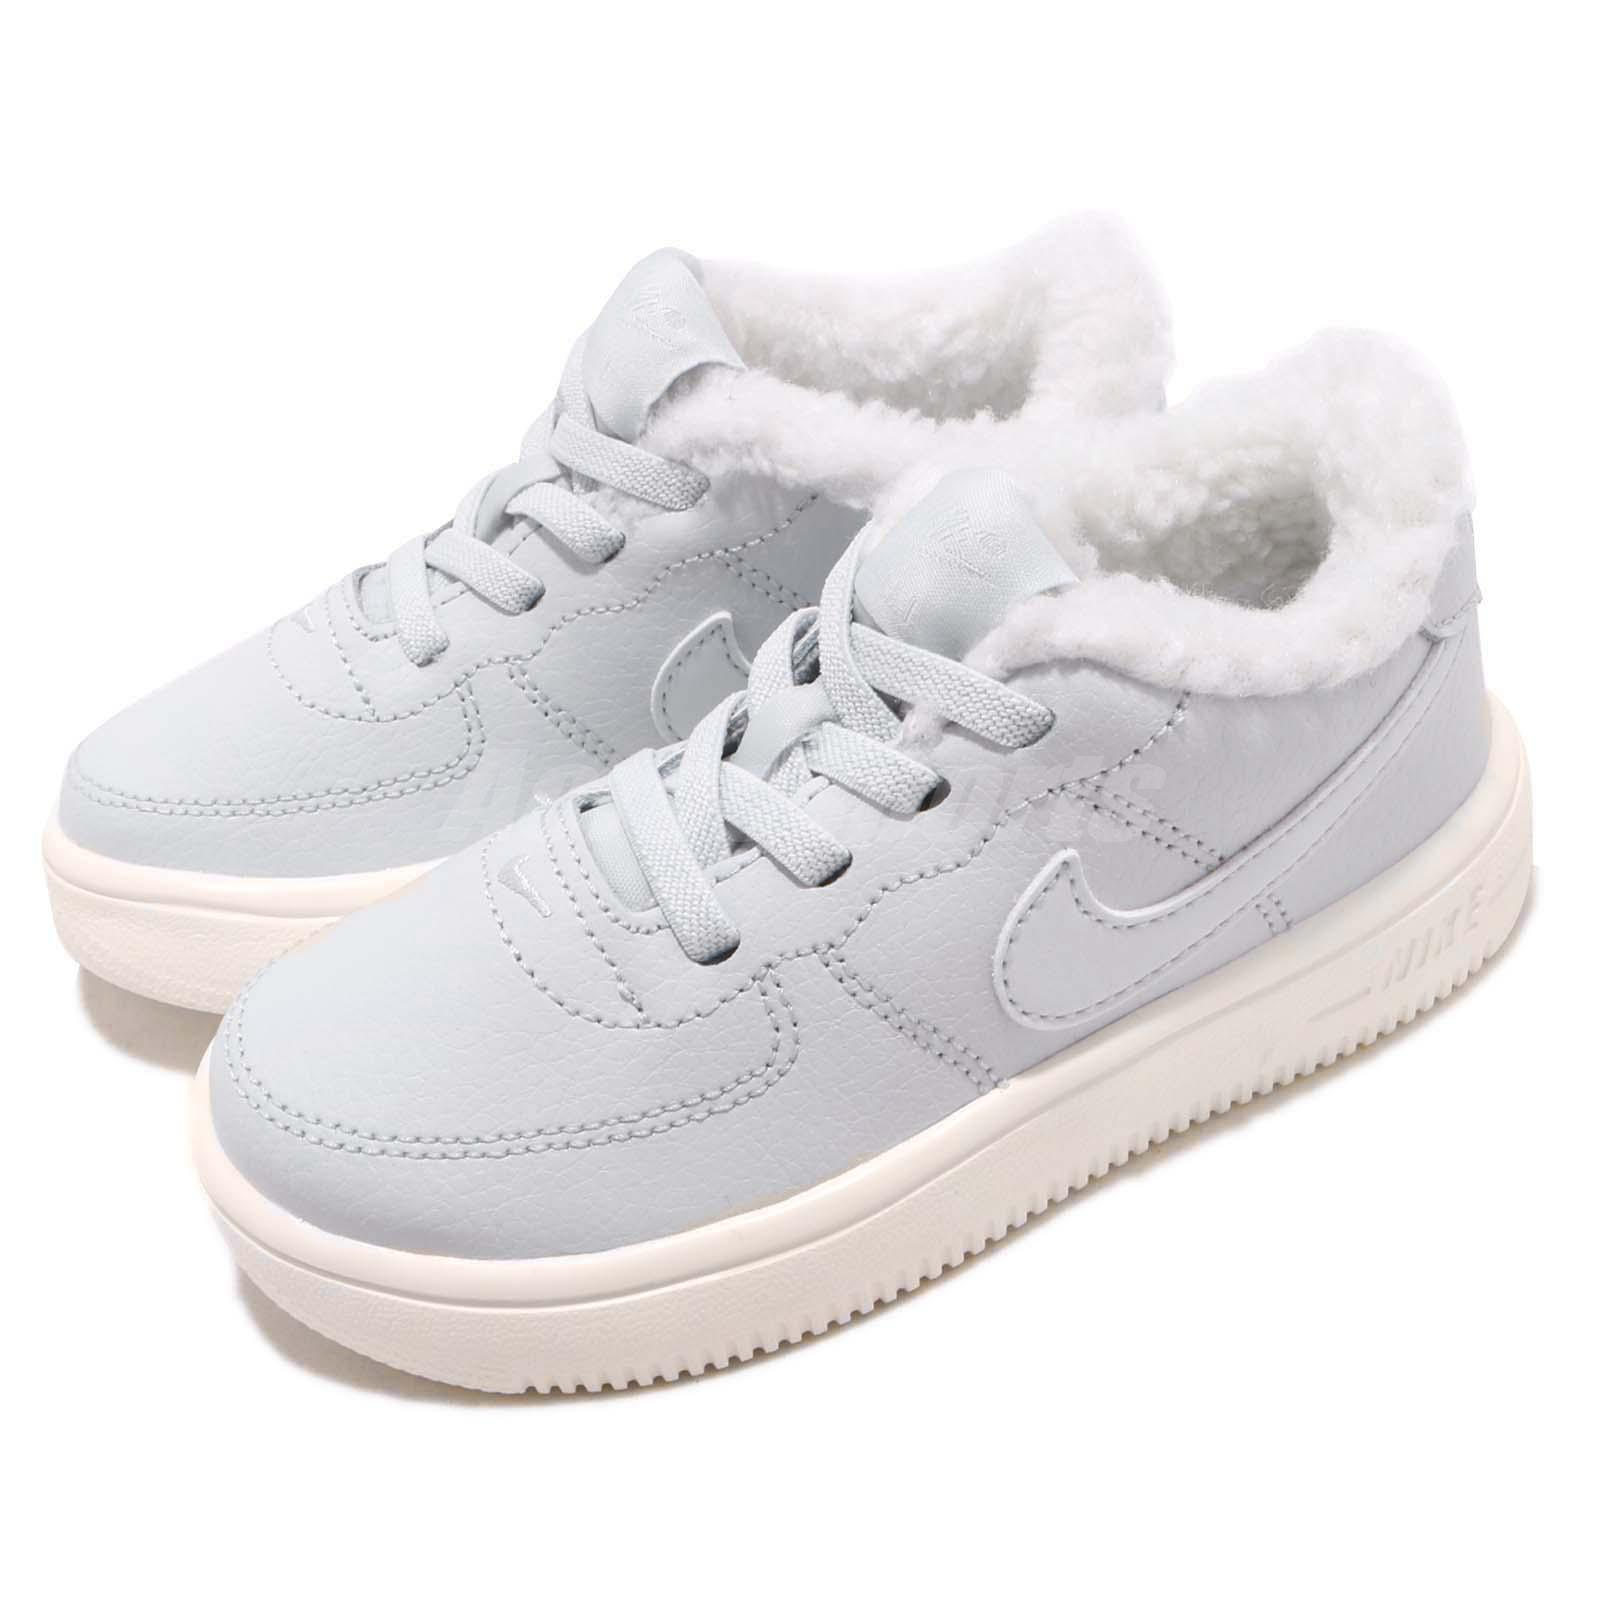 169f278521 Details about Nike Force 1 18 SE TD Pure Platinum Sail Toddler Infant Baby  Shoes AR1134-001